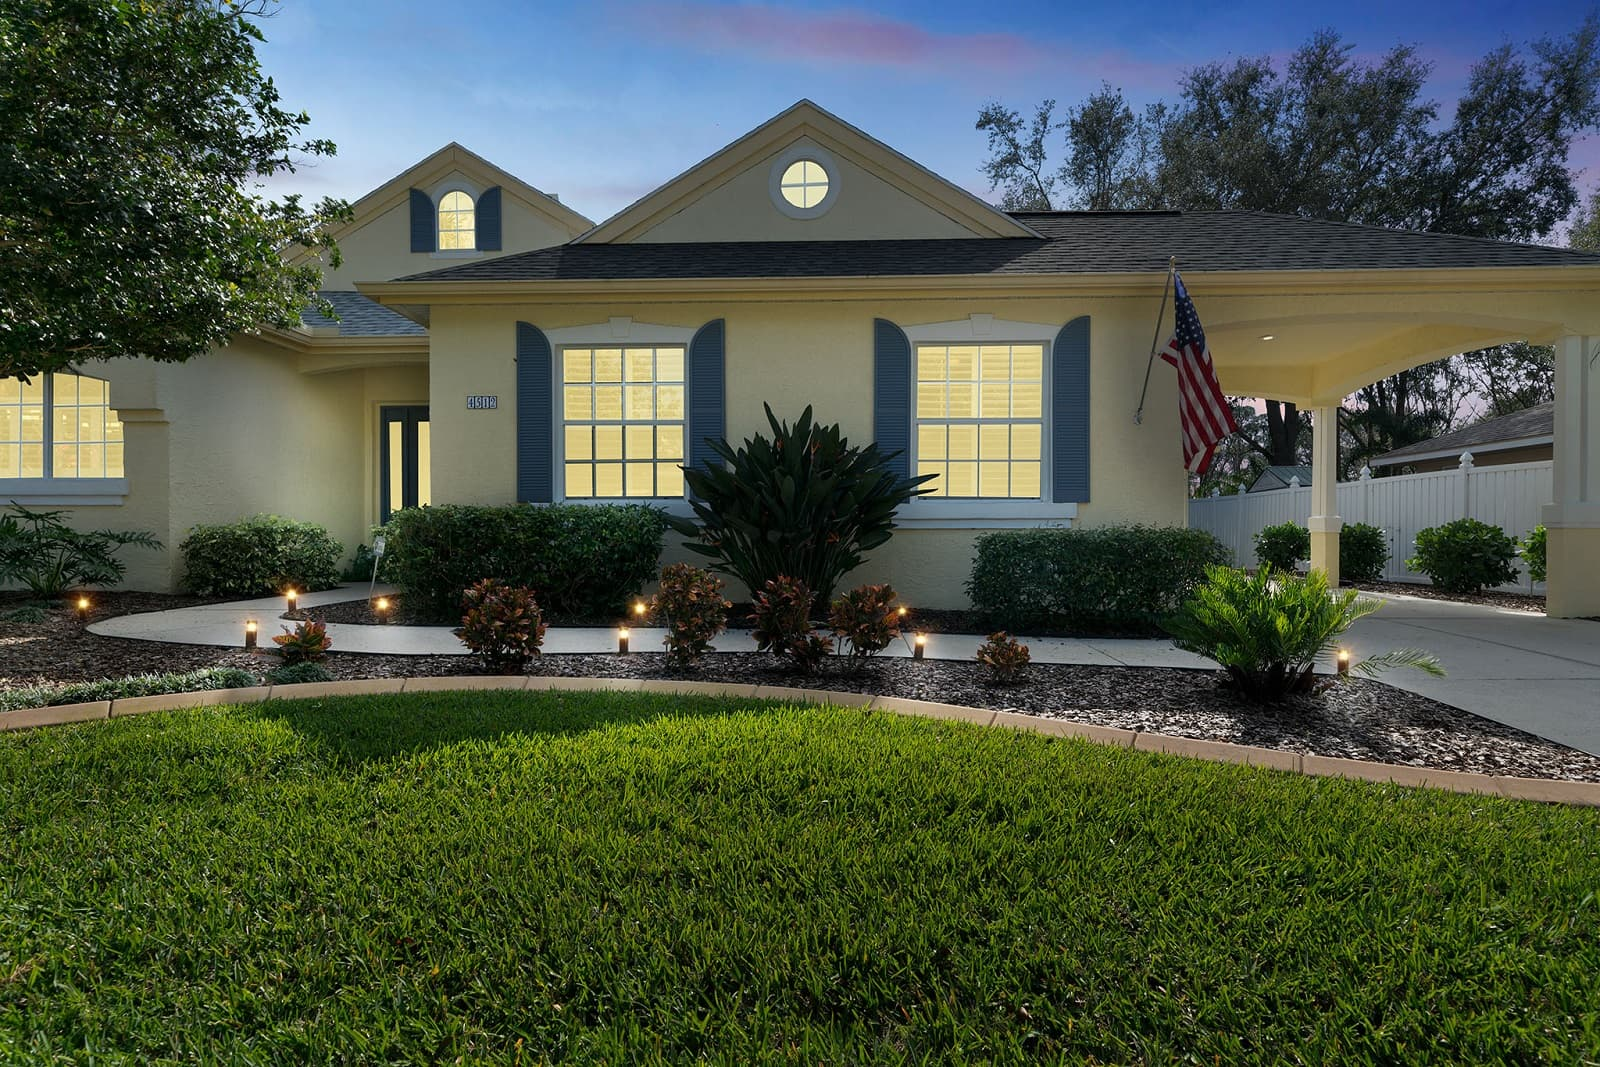 Real Estate Photography in Bradenton - FL - USA - Front View